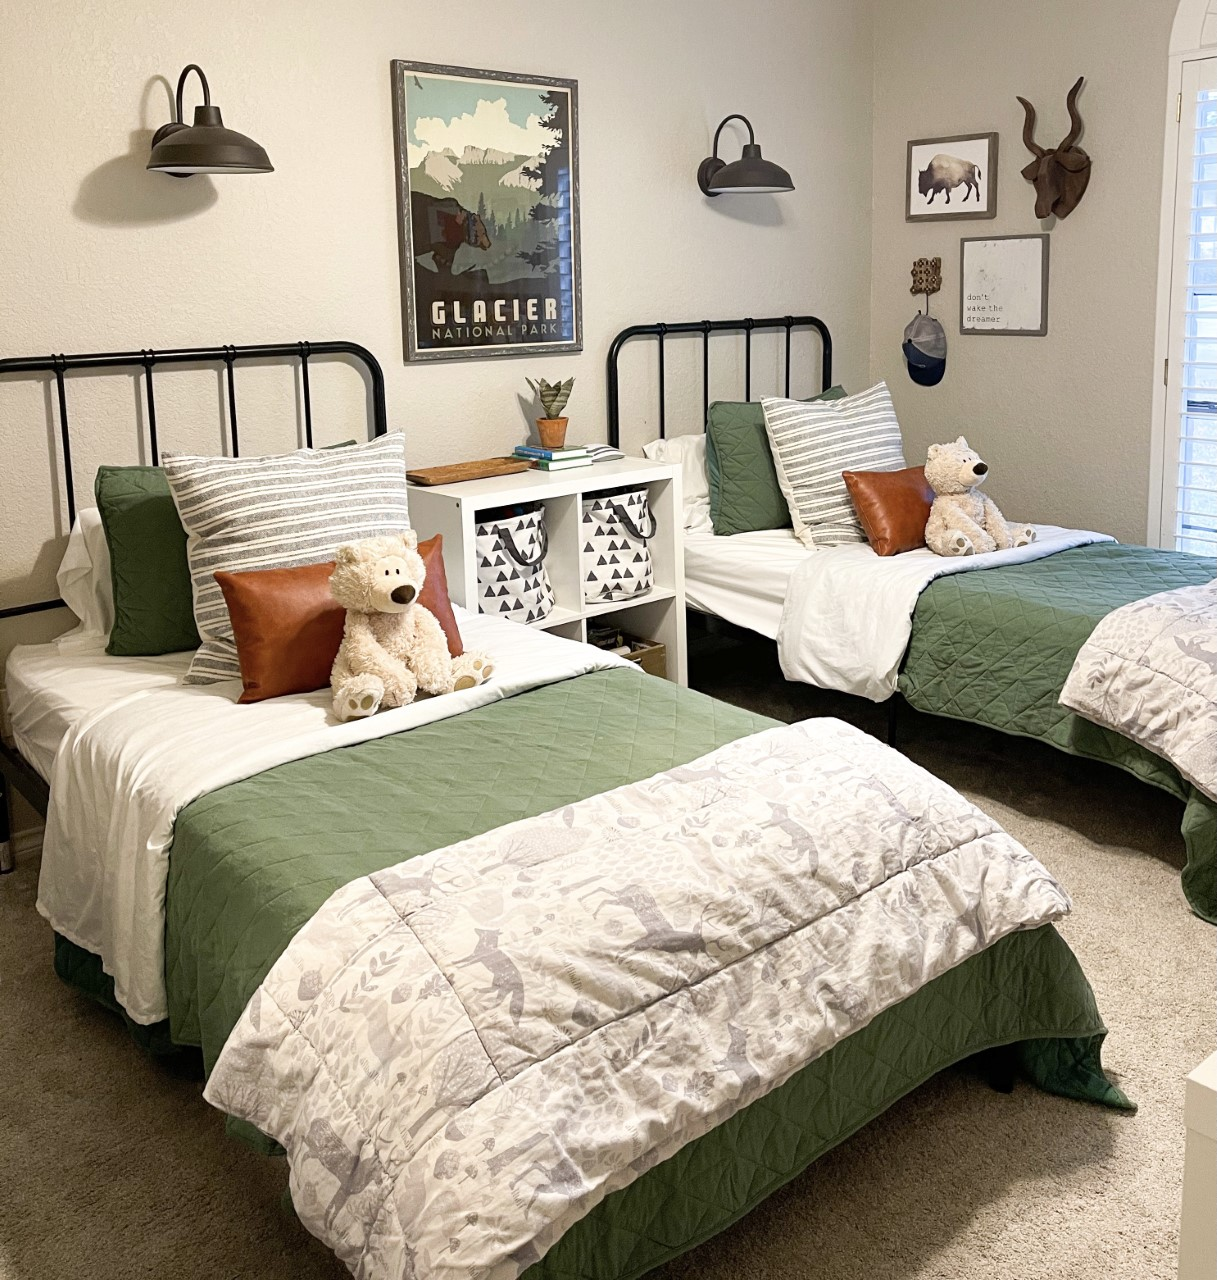 Explore More Travel Themed Shared Boys Room by Meagan Bailey Design